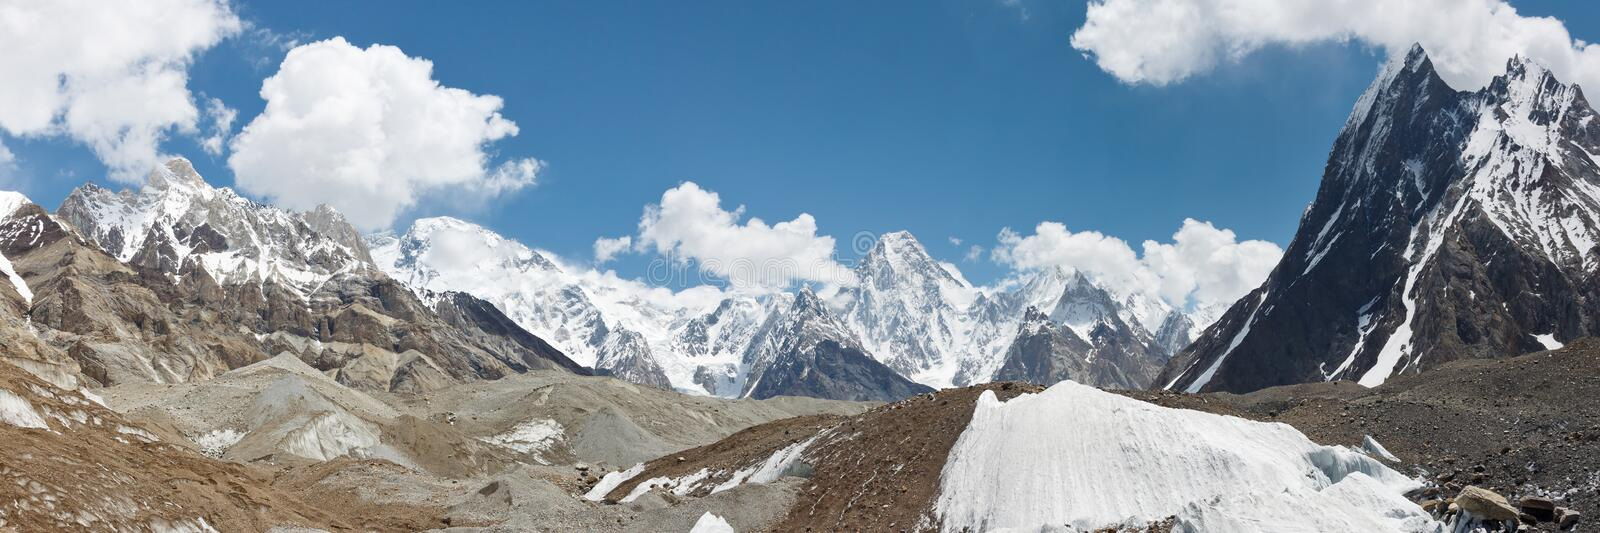 Panorama de montagnes et de glacier de Karakorum photo stock